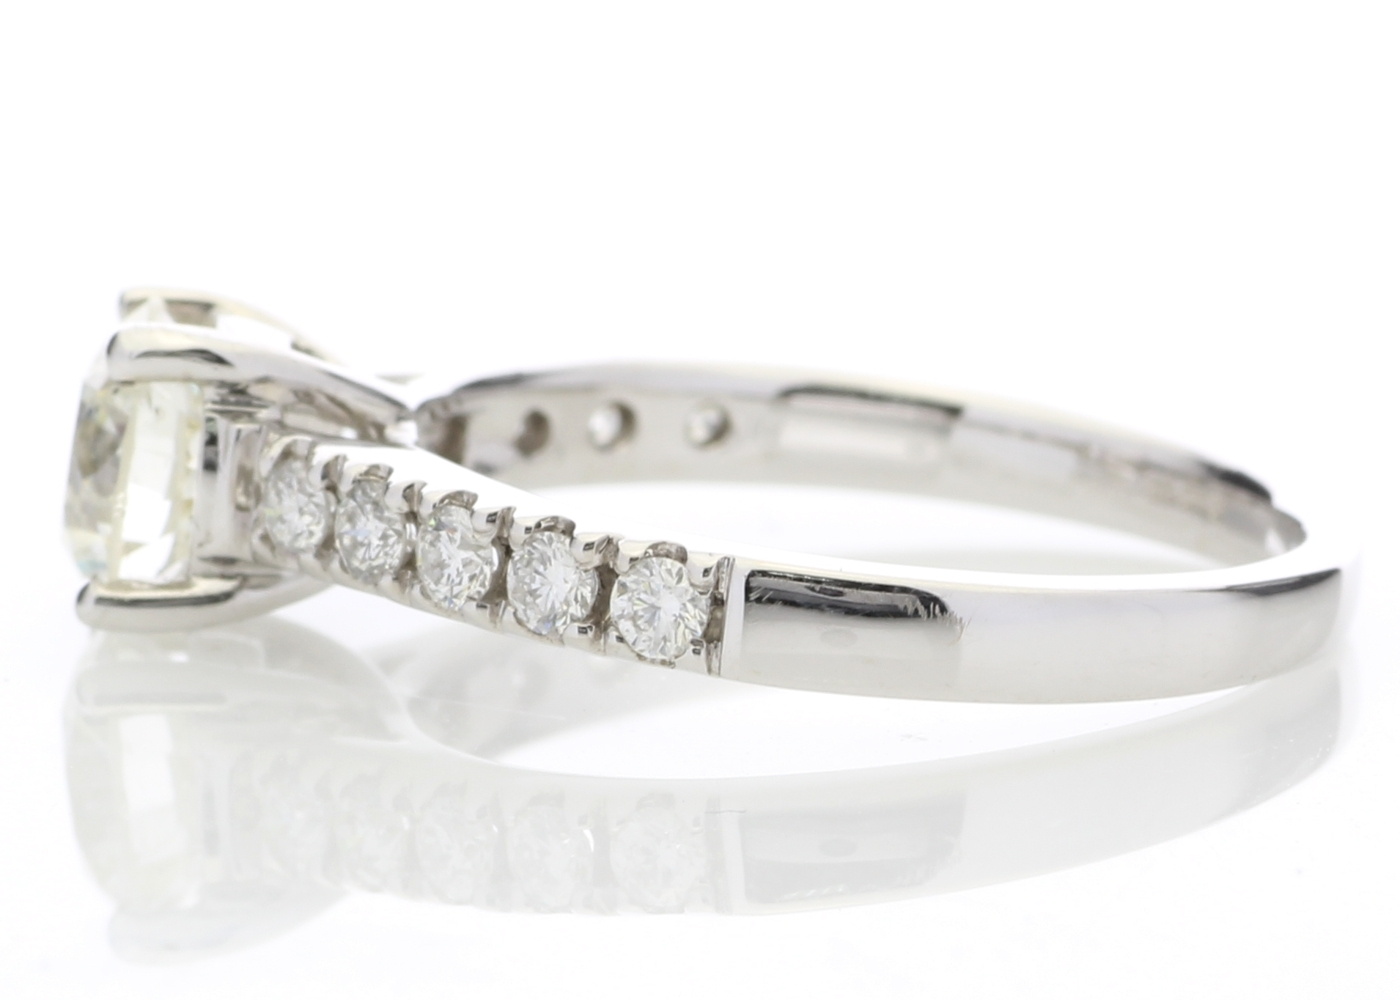 Lot 17 - 18ct White Gold Single Stone Diamond Ring With Stone Set Shoulders (1.02) 1.32 Carats